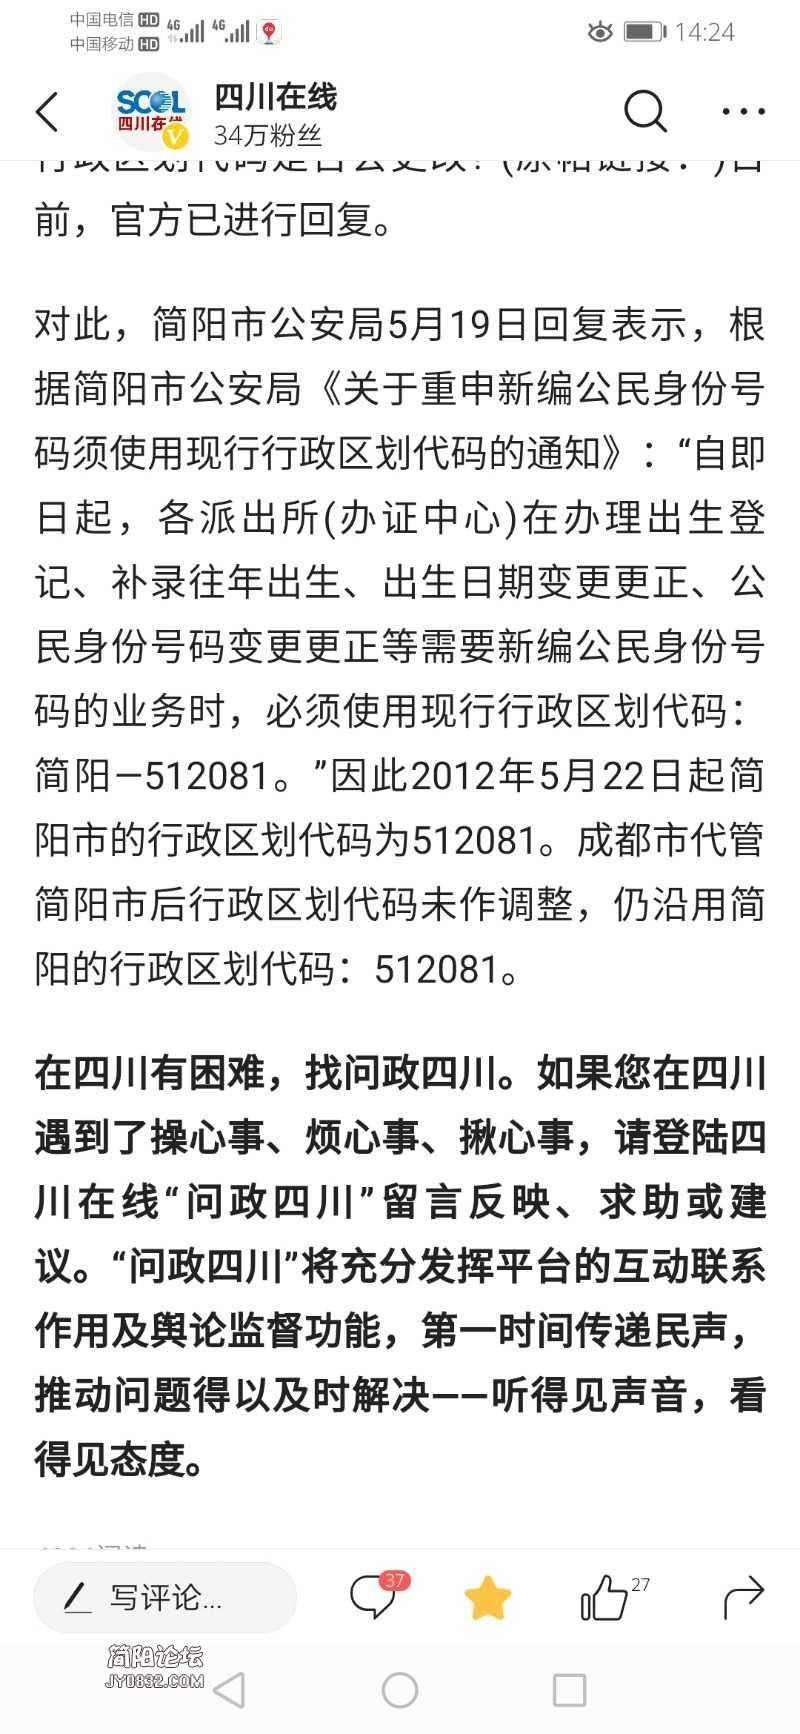 Screenshot_20200520_142441_com.ss.android.article.news.jpg